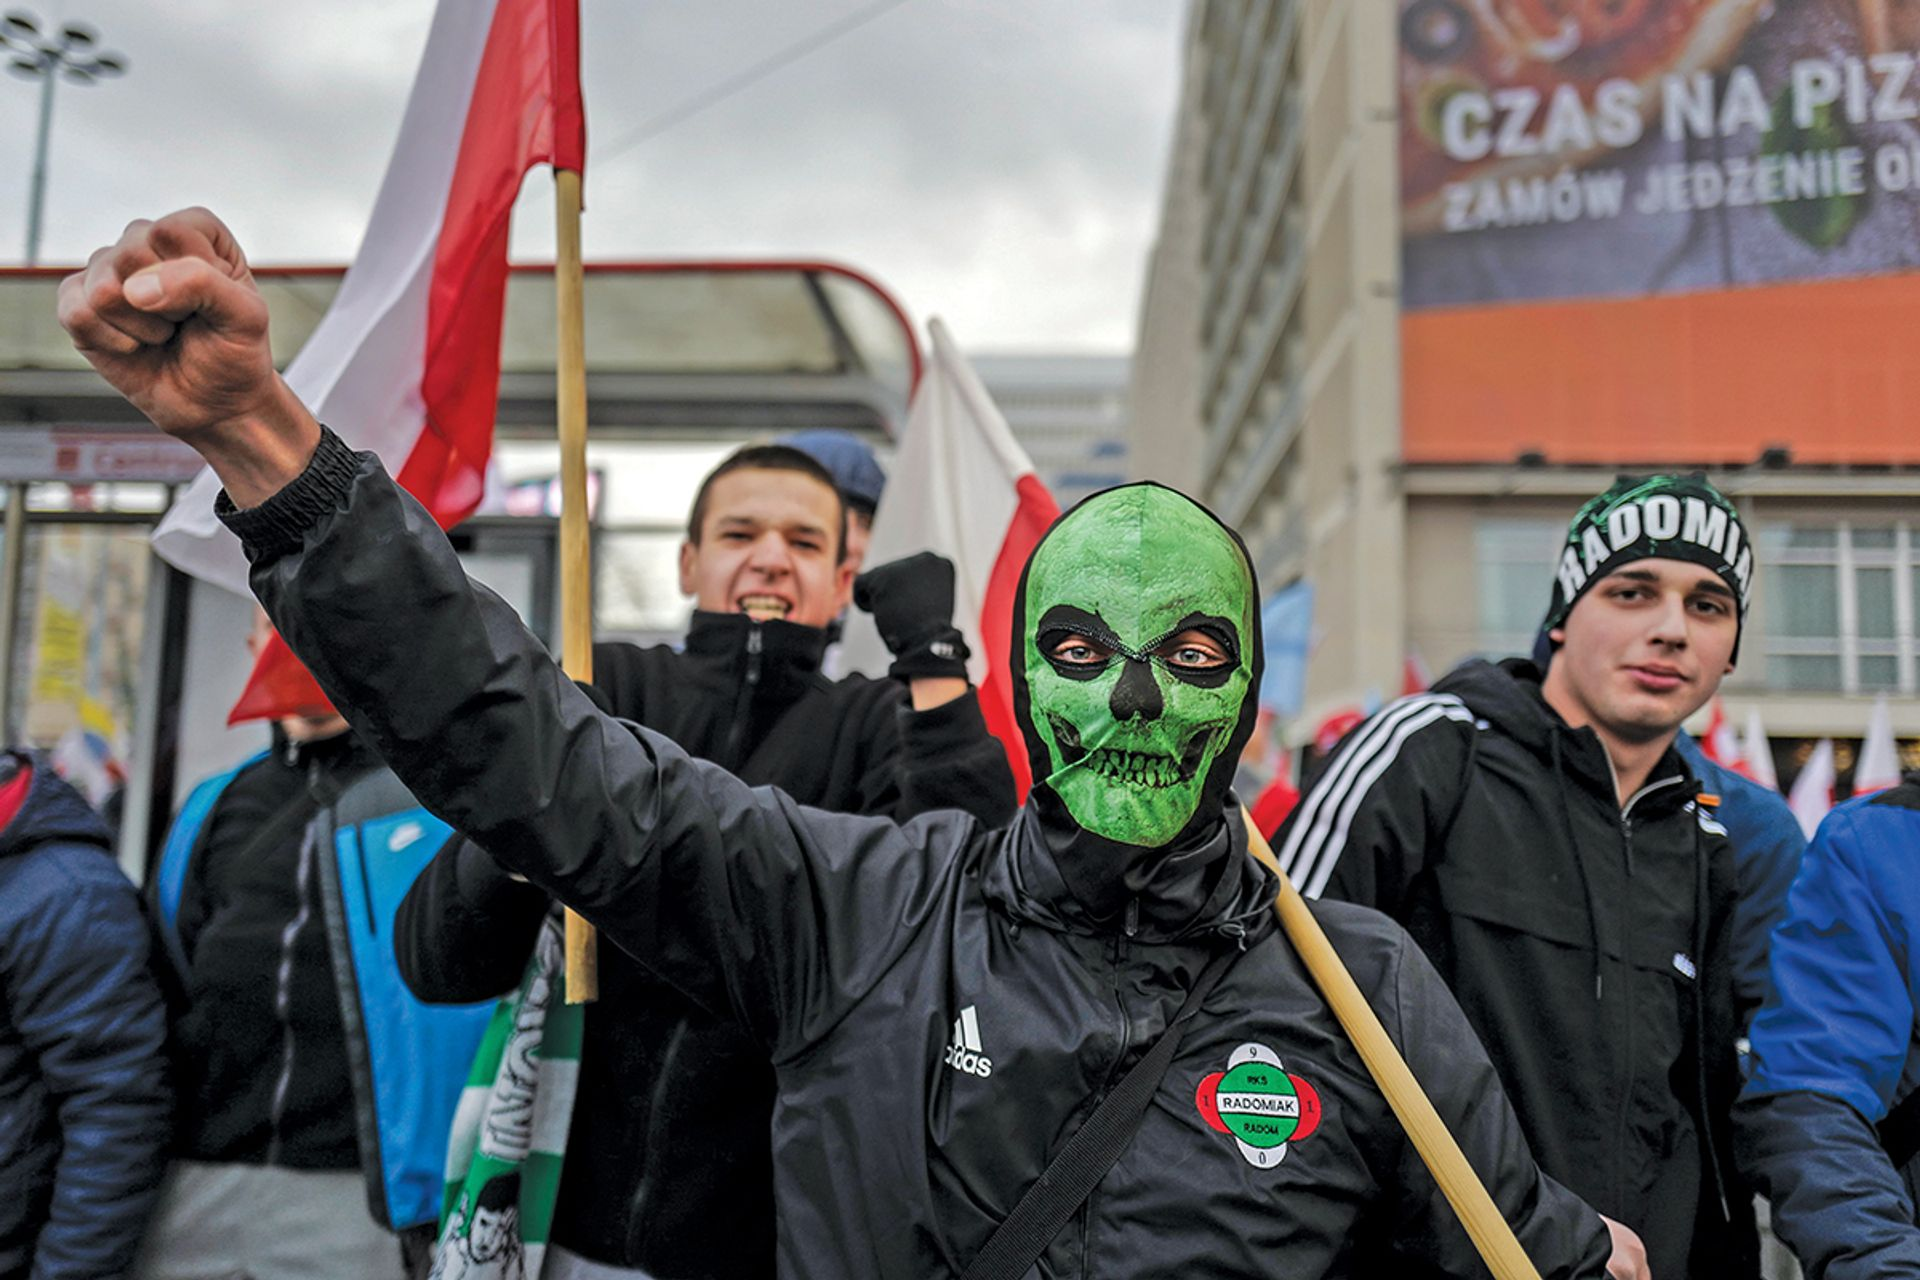 Growing xenophobia in Poland is typified by a 60,000-strong march by right-wing nationalists in Warsaw last November Chris Niedenthal/FORUM